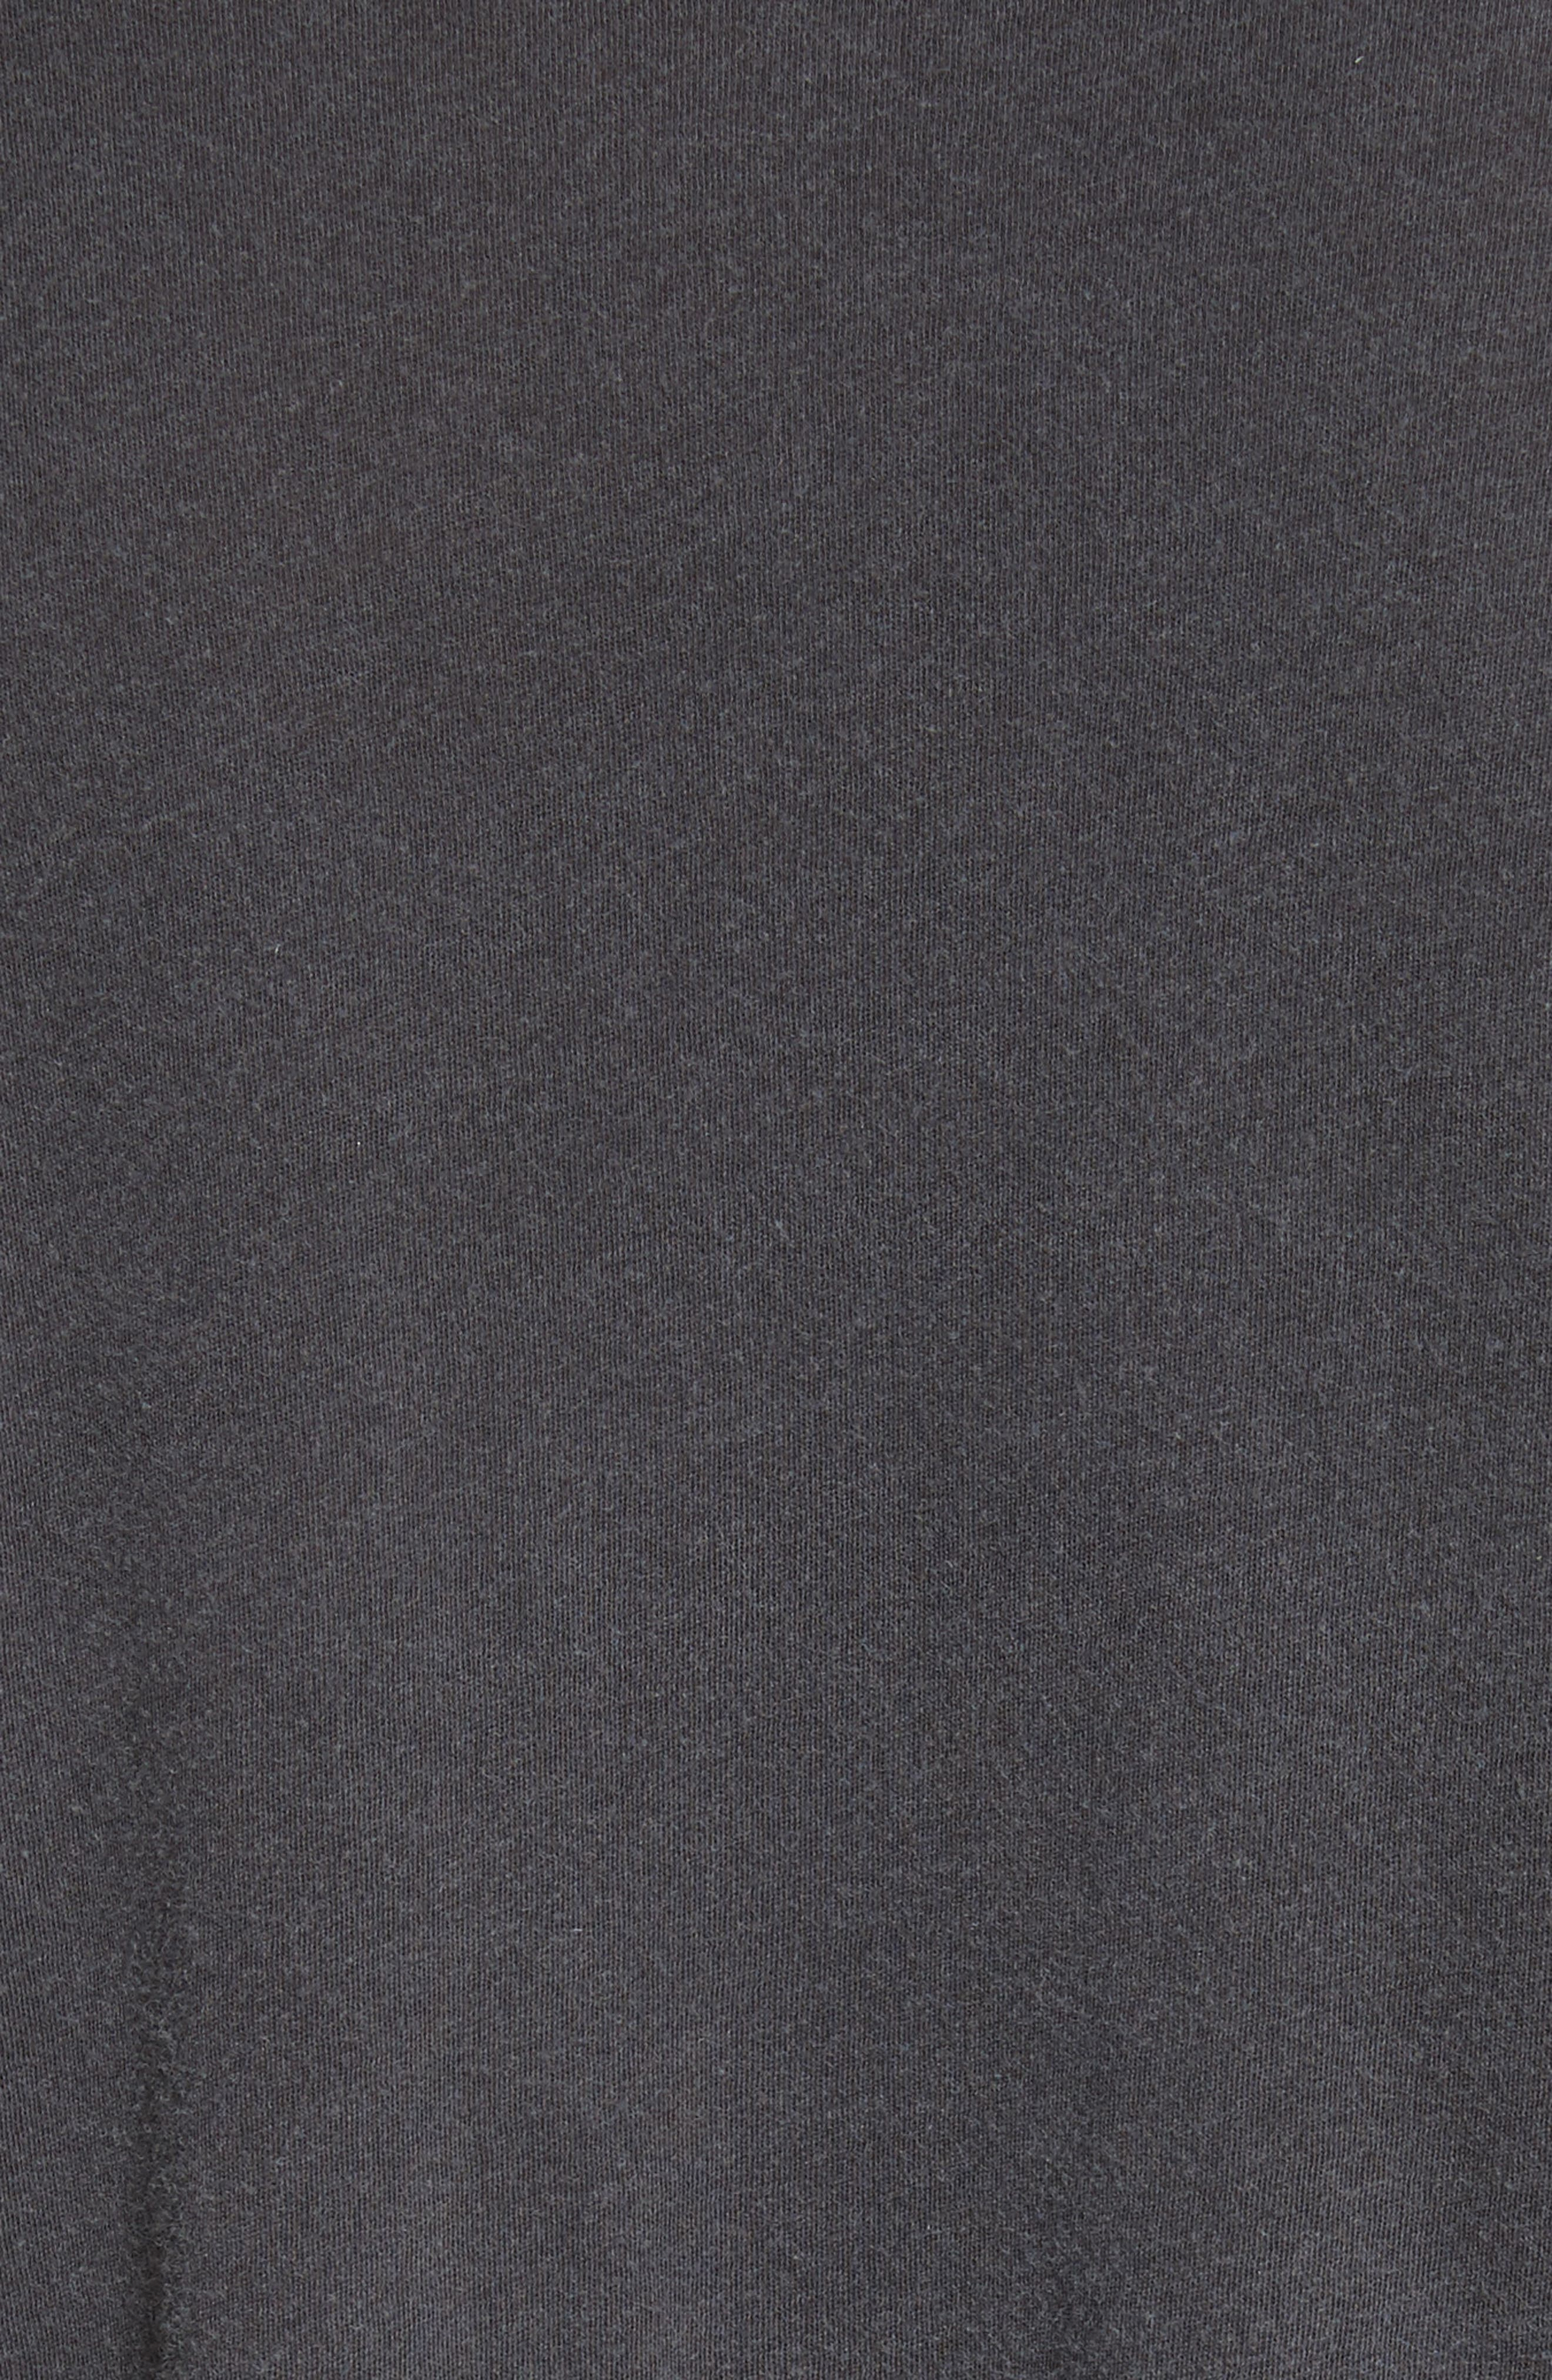 Abassi Embroidered T-Shirt,                             Alternate thumbnail 5, color,                             Blk Pigment